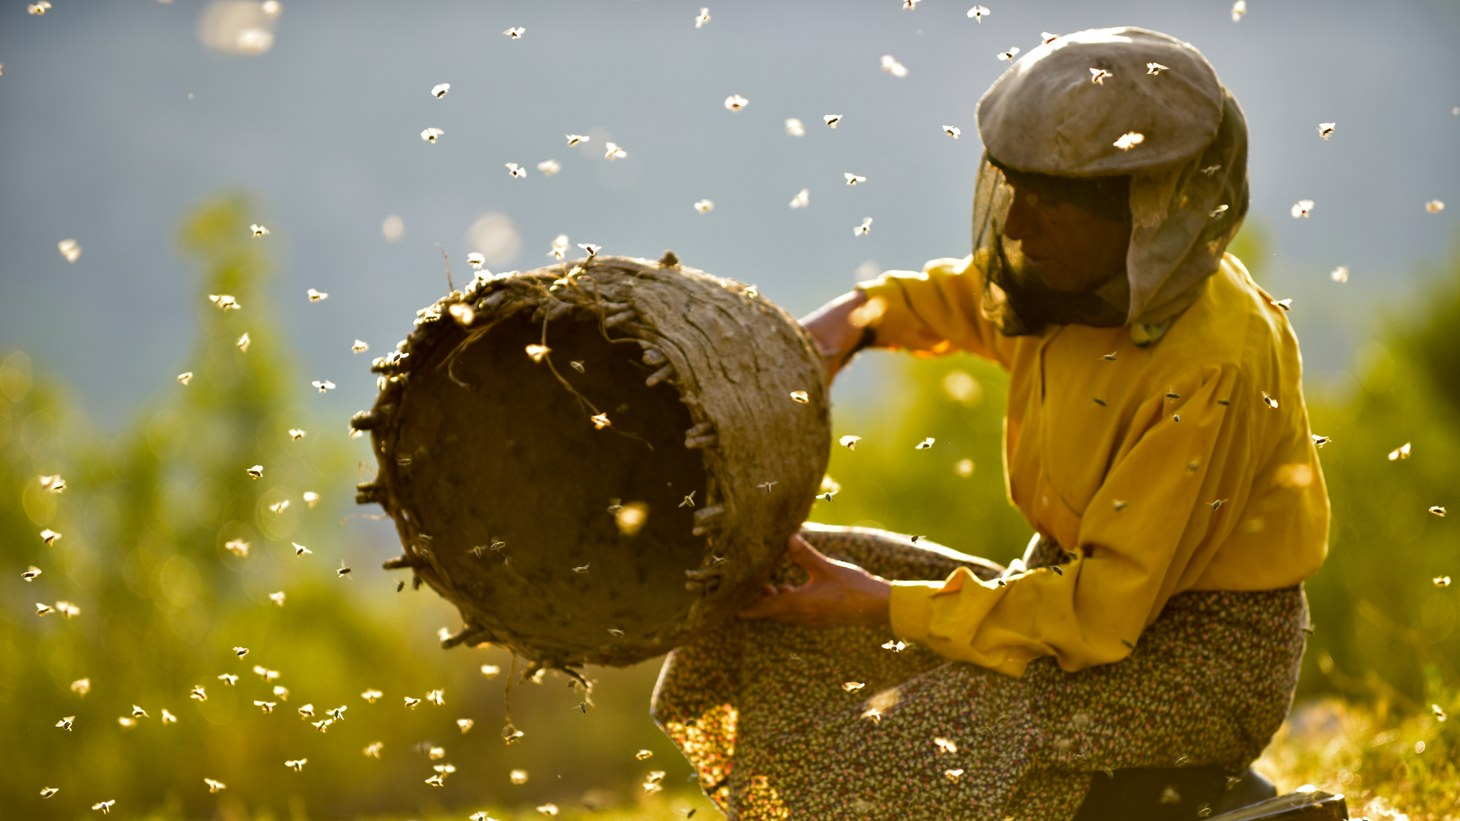 """Honeyland"" was nominated for Best Documentary and Best International Feature Film at the Academy Awards, the only documentary in the history of the Oscars to receive a nomination in the latter category."